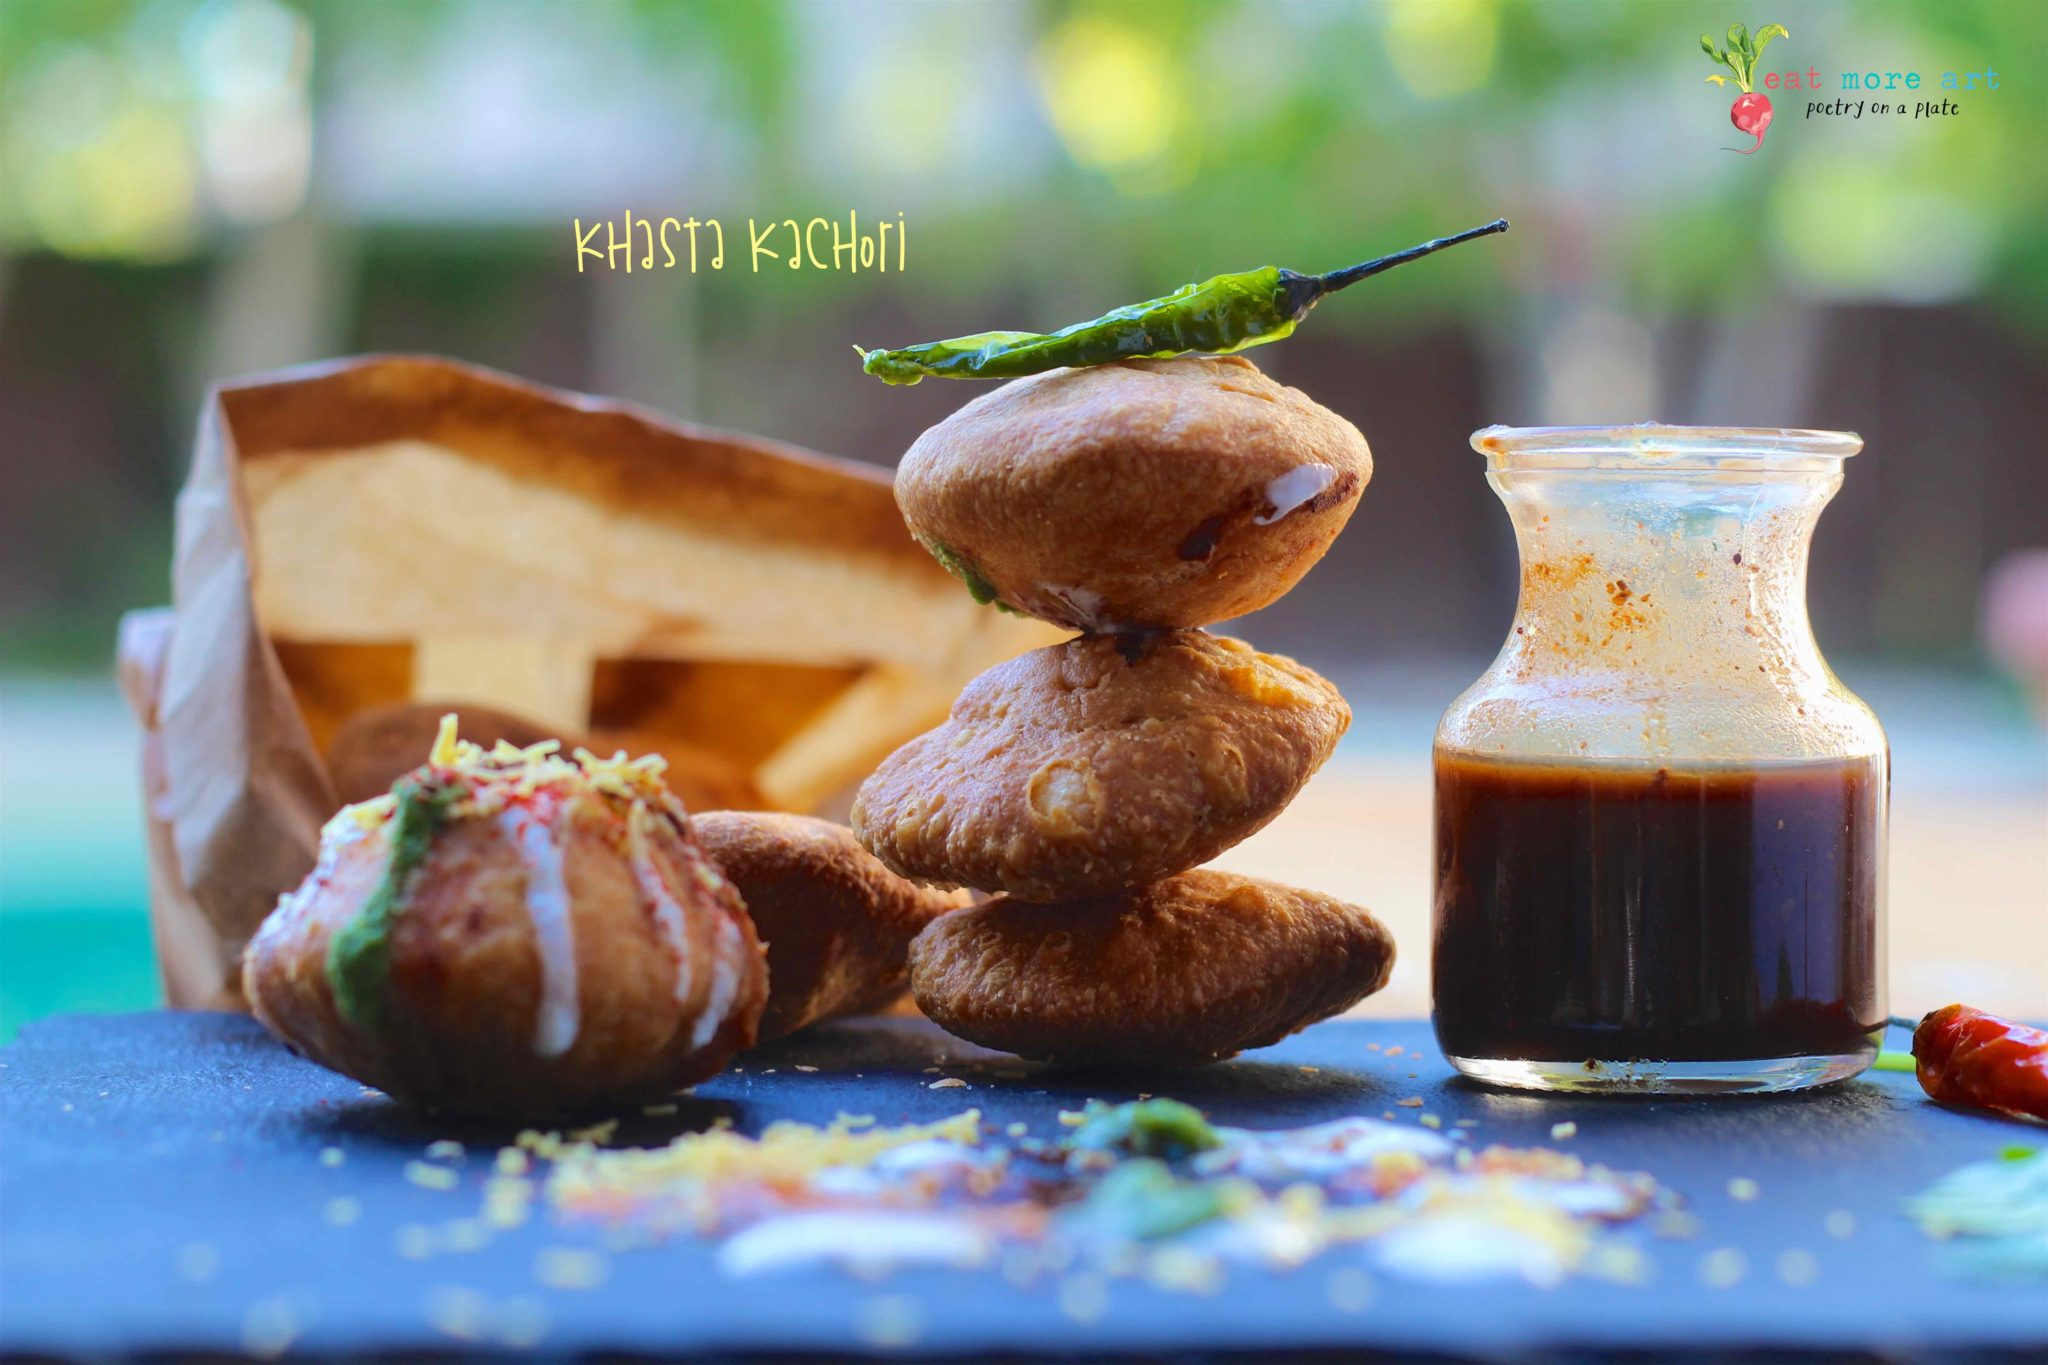 Khasta Kachori stacked up with green chili on top and chutney and khasta kachori chaat on the side